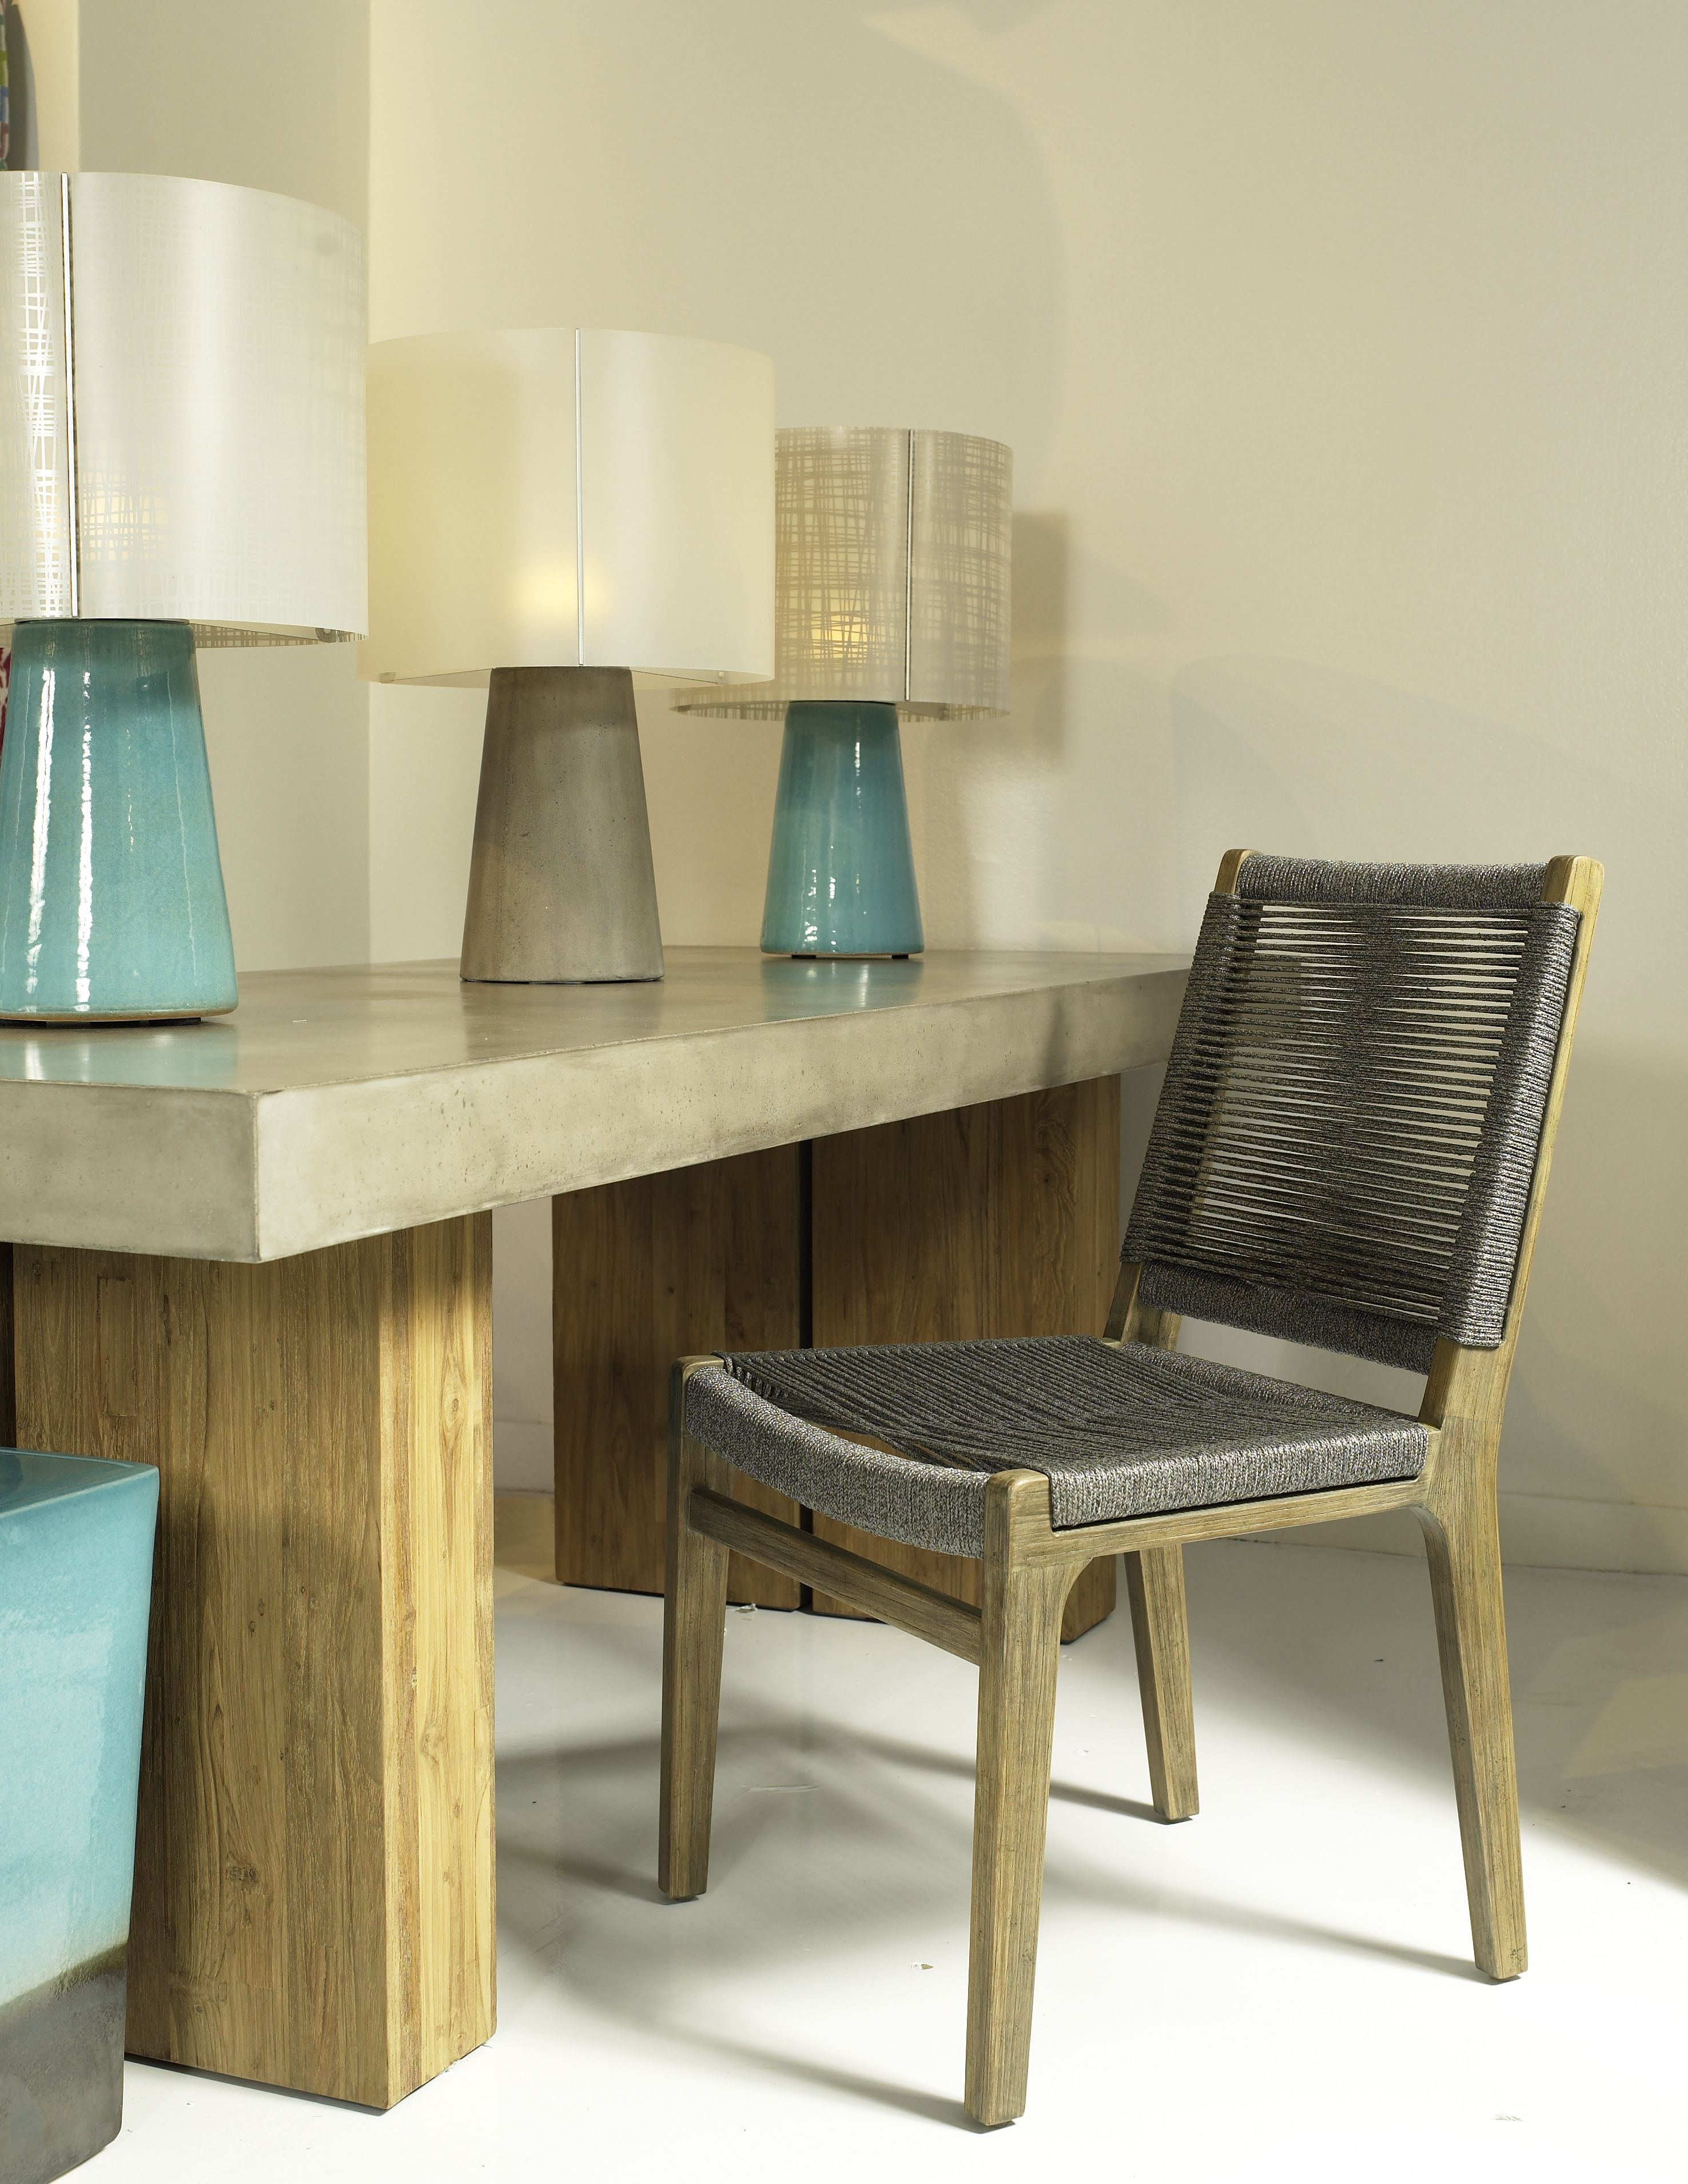 Ocean dining chair and perpetual concrete table by seasonal living